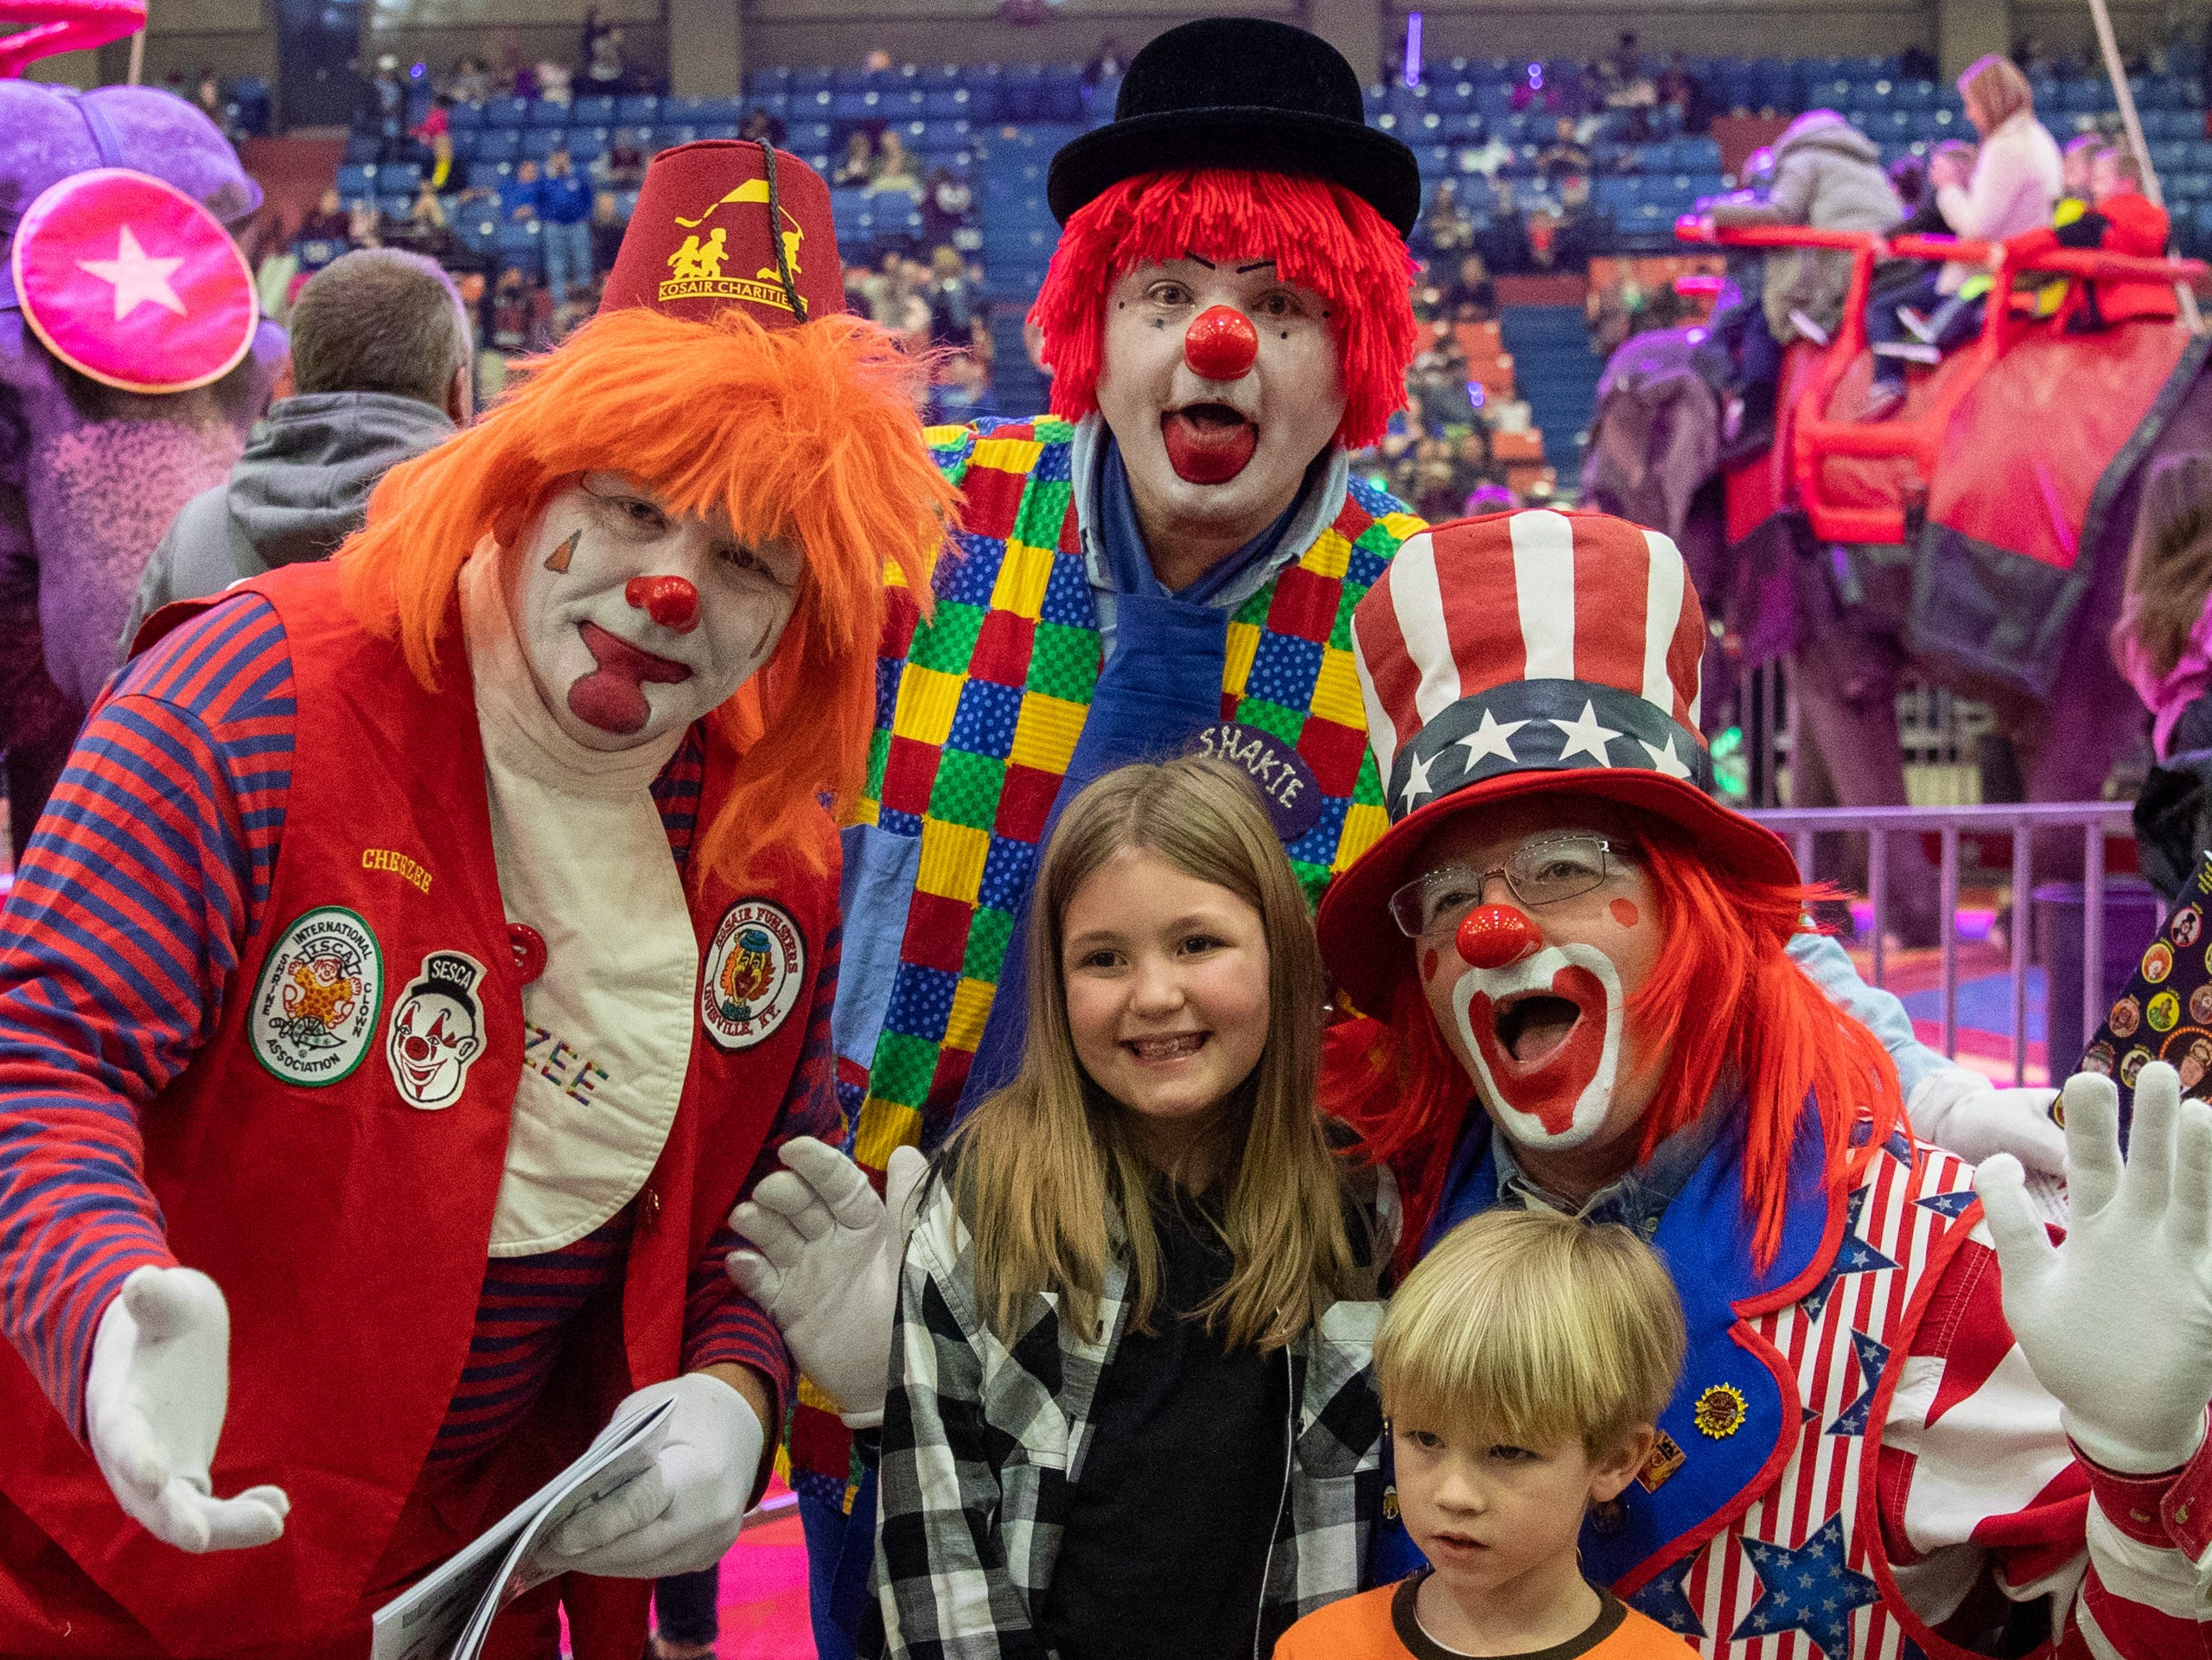 Clowning around for photos during intermission of the Kosair Shrine Circus, Saturday, Feb. 9, 2019 in Louisville Ky.